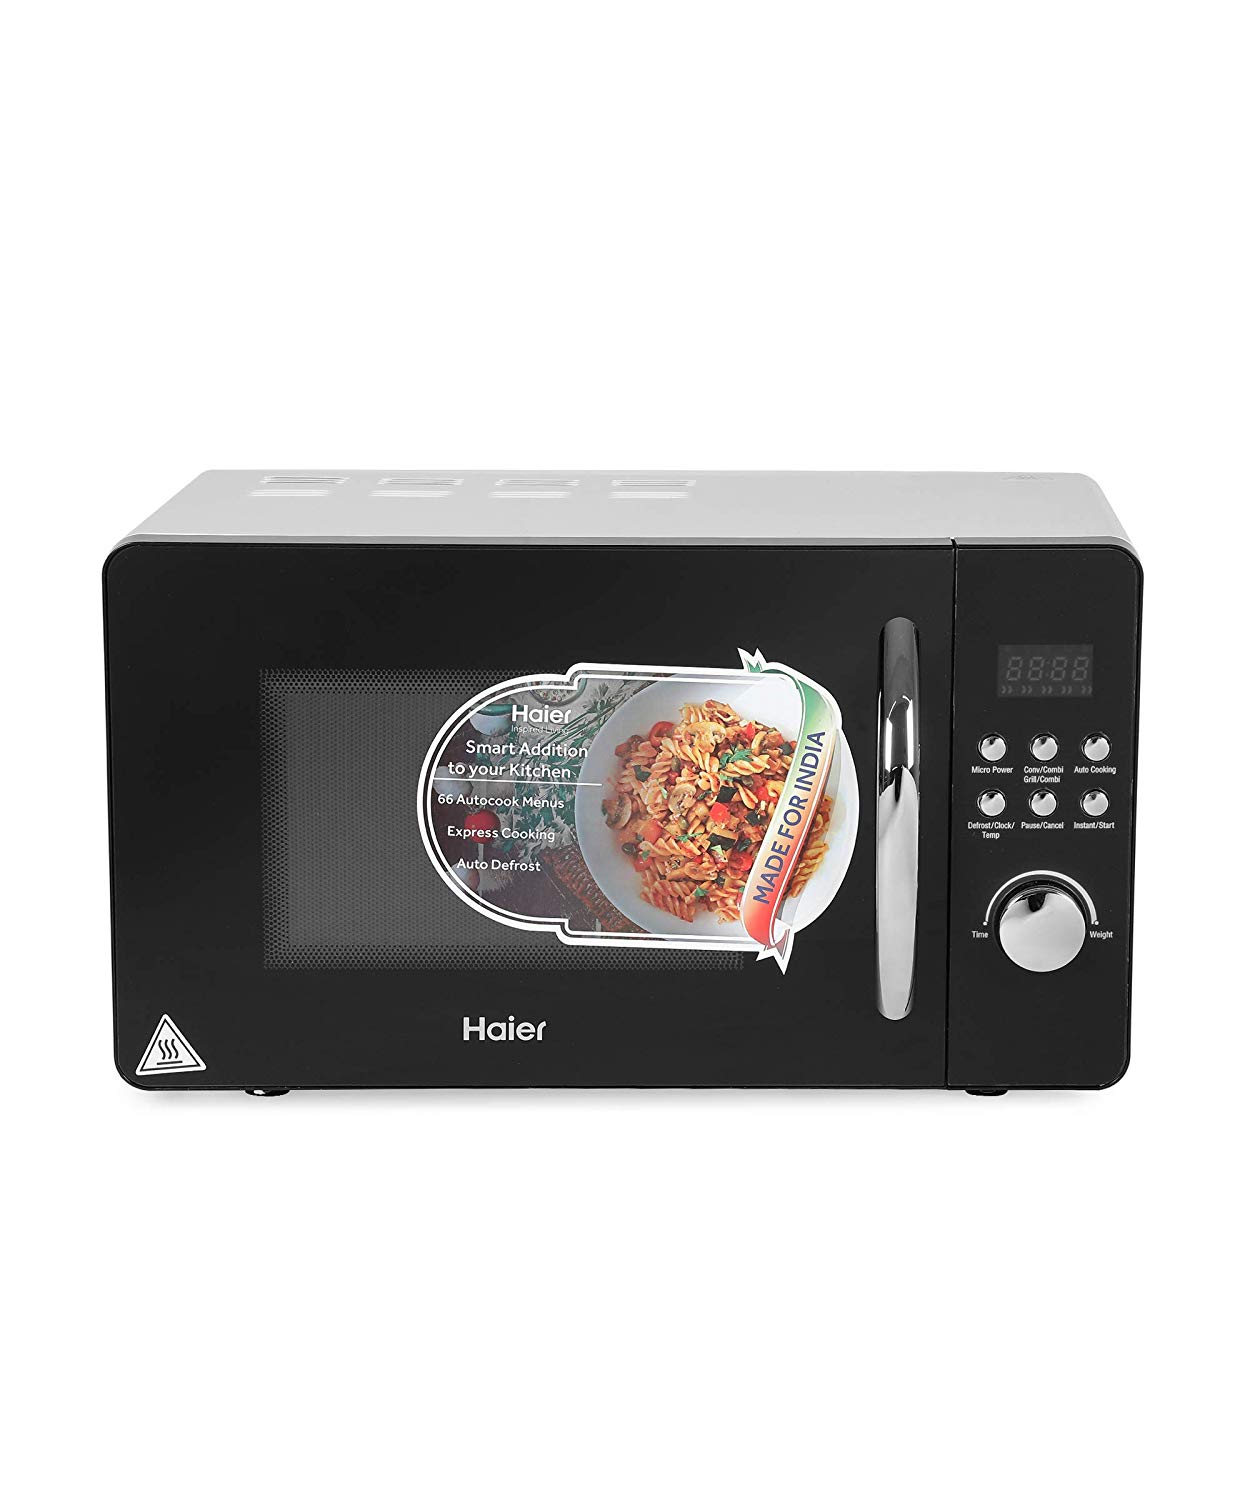 Haier 20 Liters Convection Microwave Oven